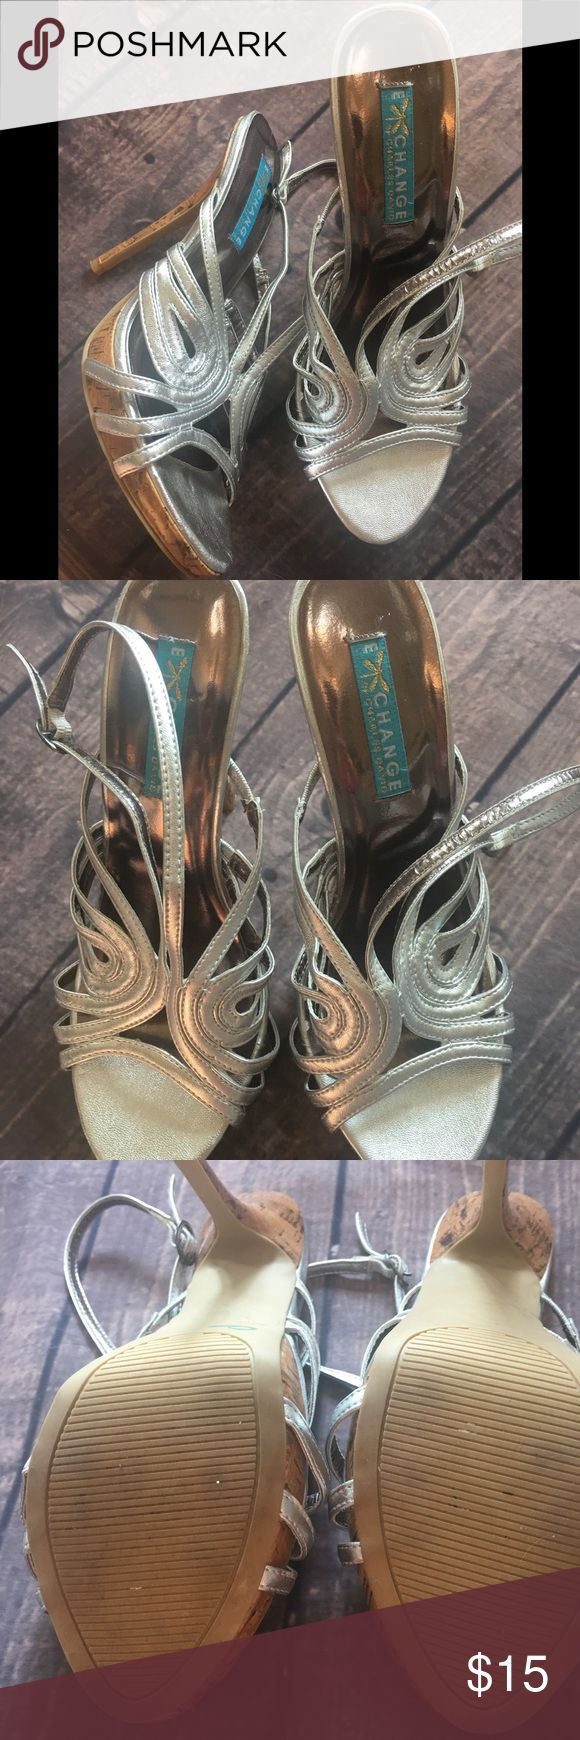 Exchange by Charles David Silver Strap Heels Sz 9 Perfect condition. Only worn once Charles David Shoes Heels